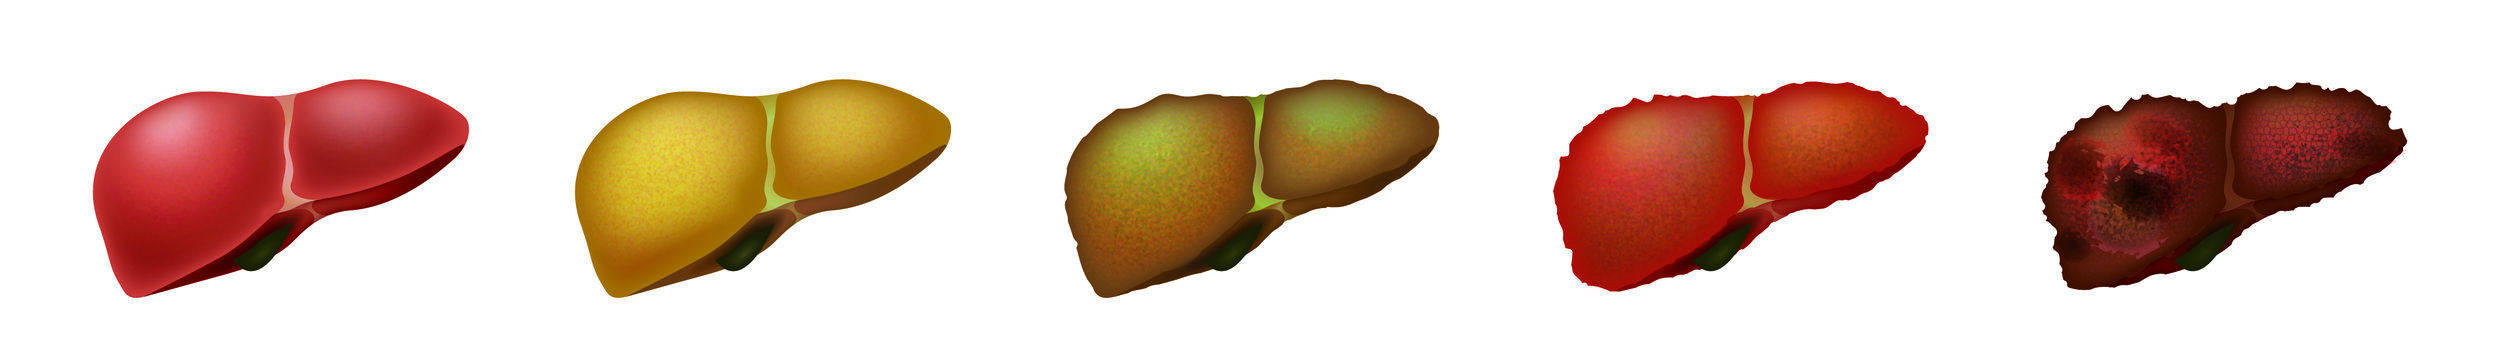 Liver_Conditions-01.jpg